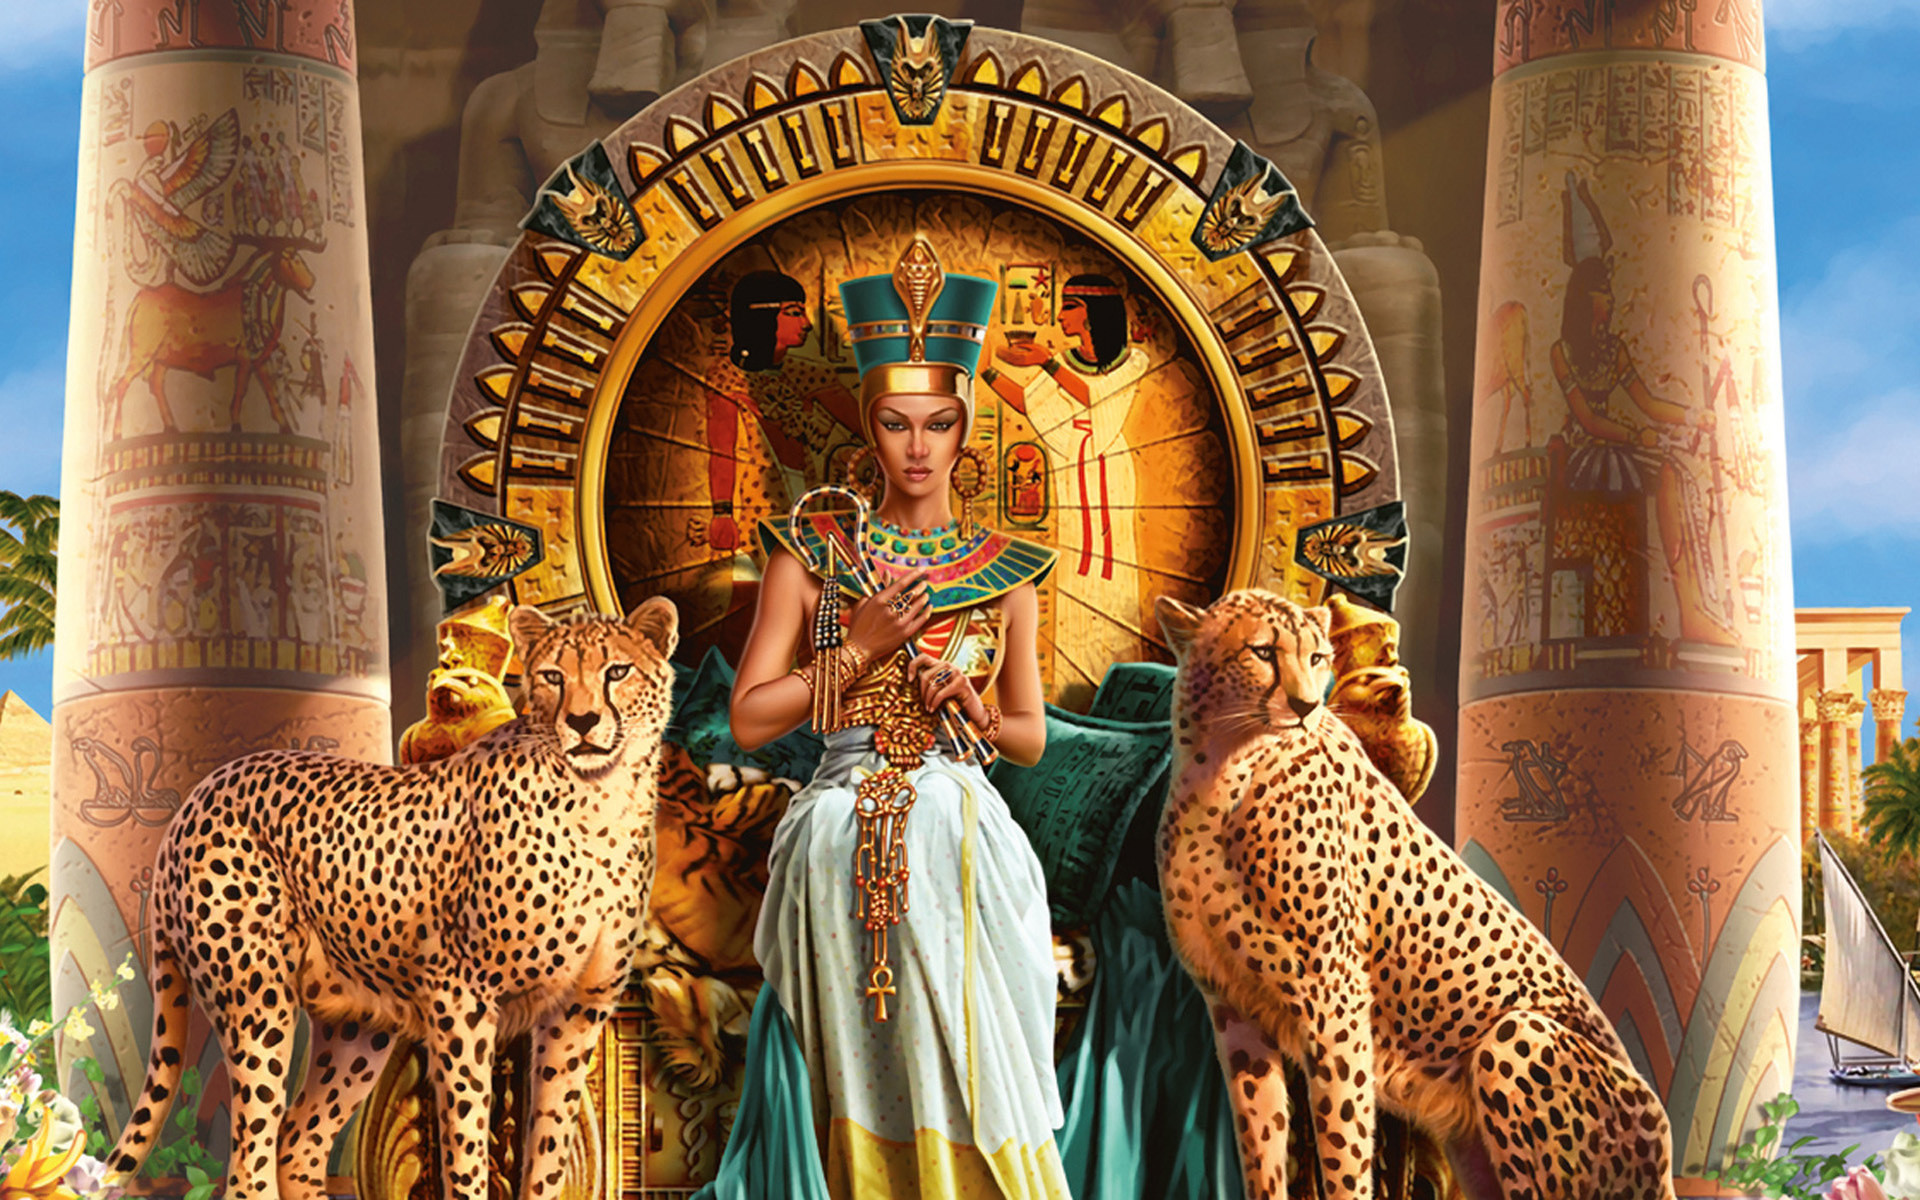 Cleopatra VII Philopator pharaoh Ancient Egypt Ptolemaic dynasty Egyptian  animals cats cheetah throne color detail jewelry